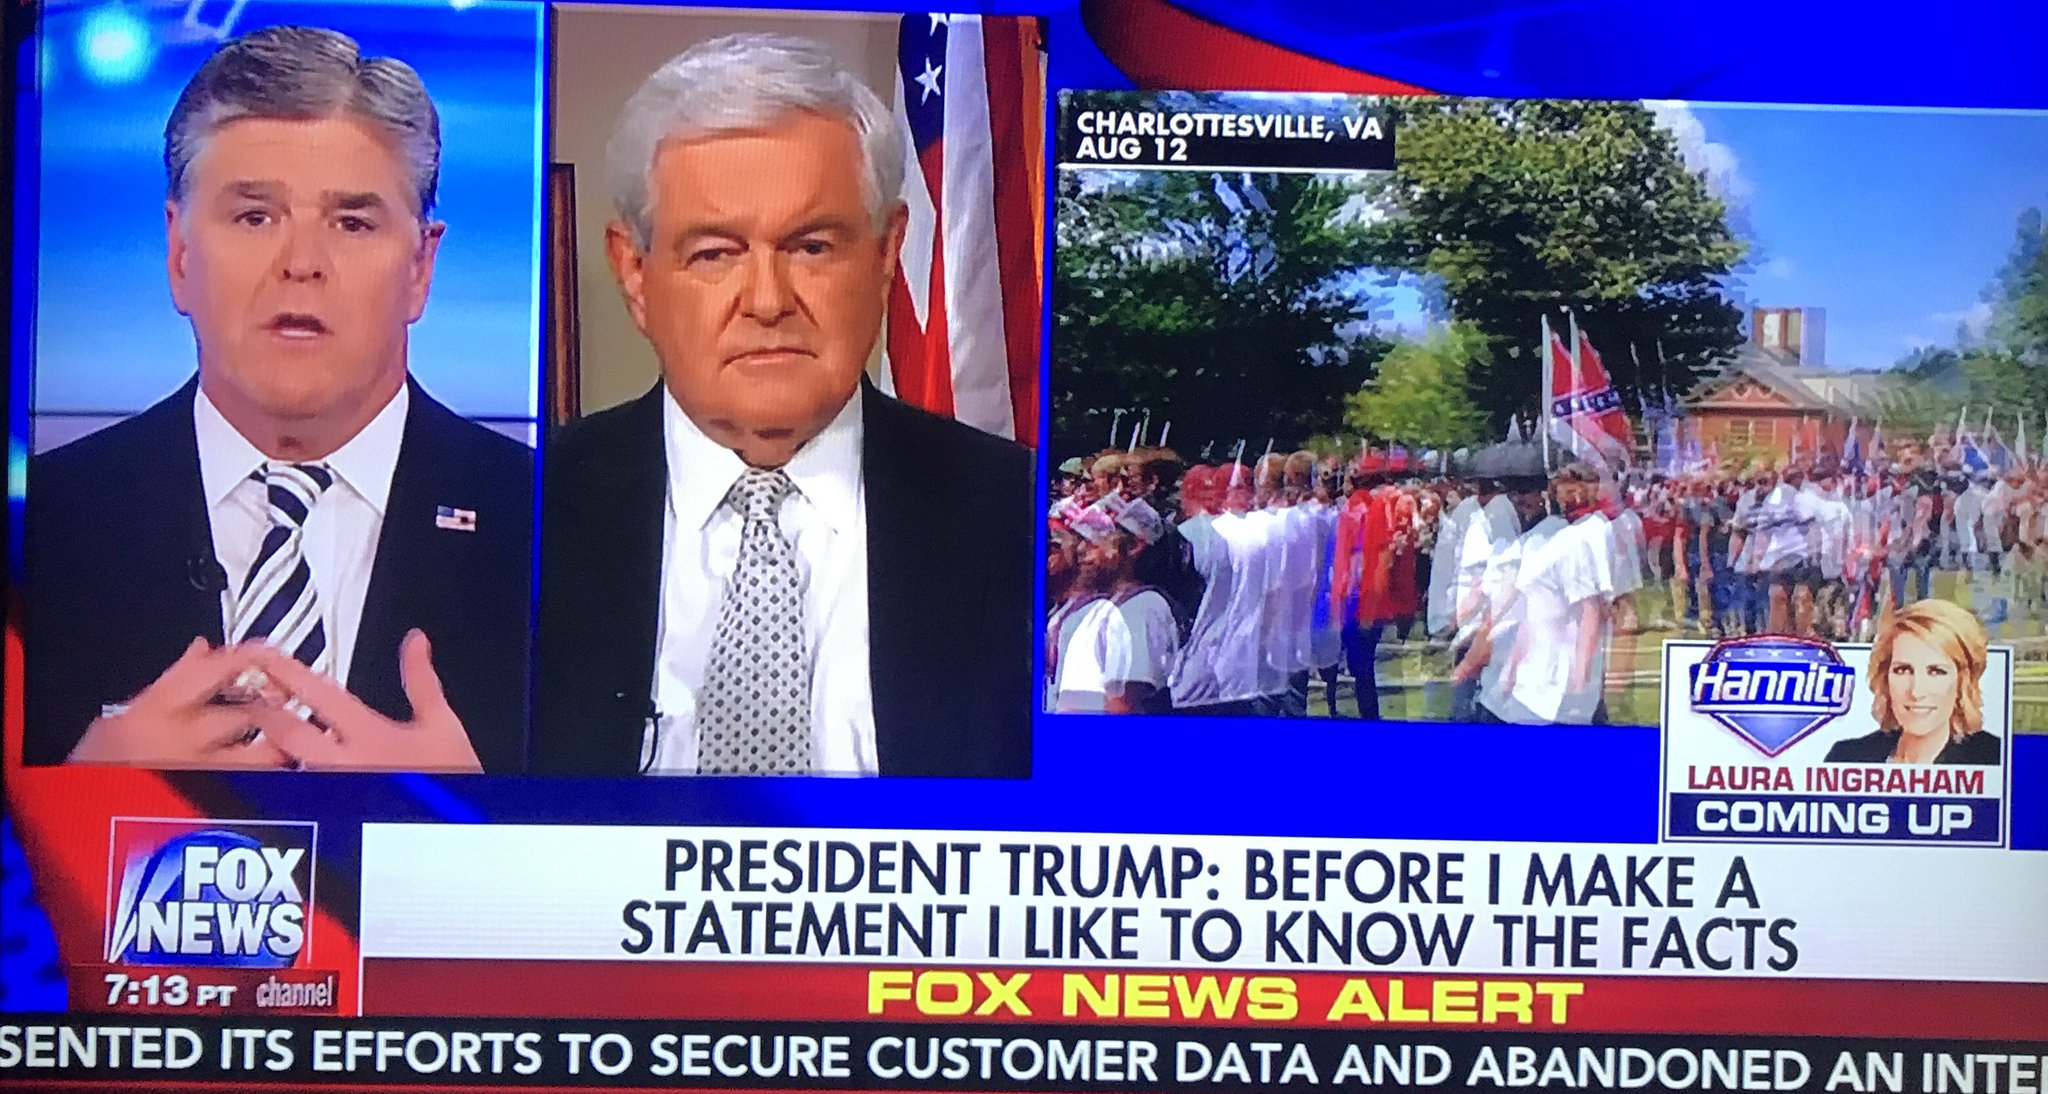 Gingrich tells Hannity: 'Most of the violence we have seen this year has been on the left.' https://t.co/uOC9eOhMTB